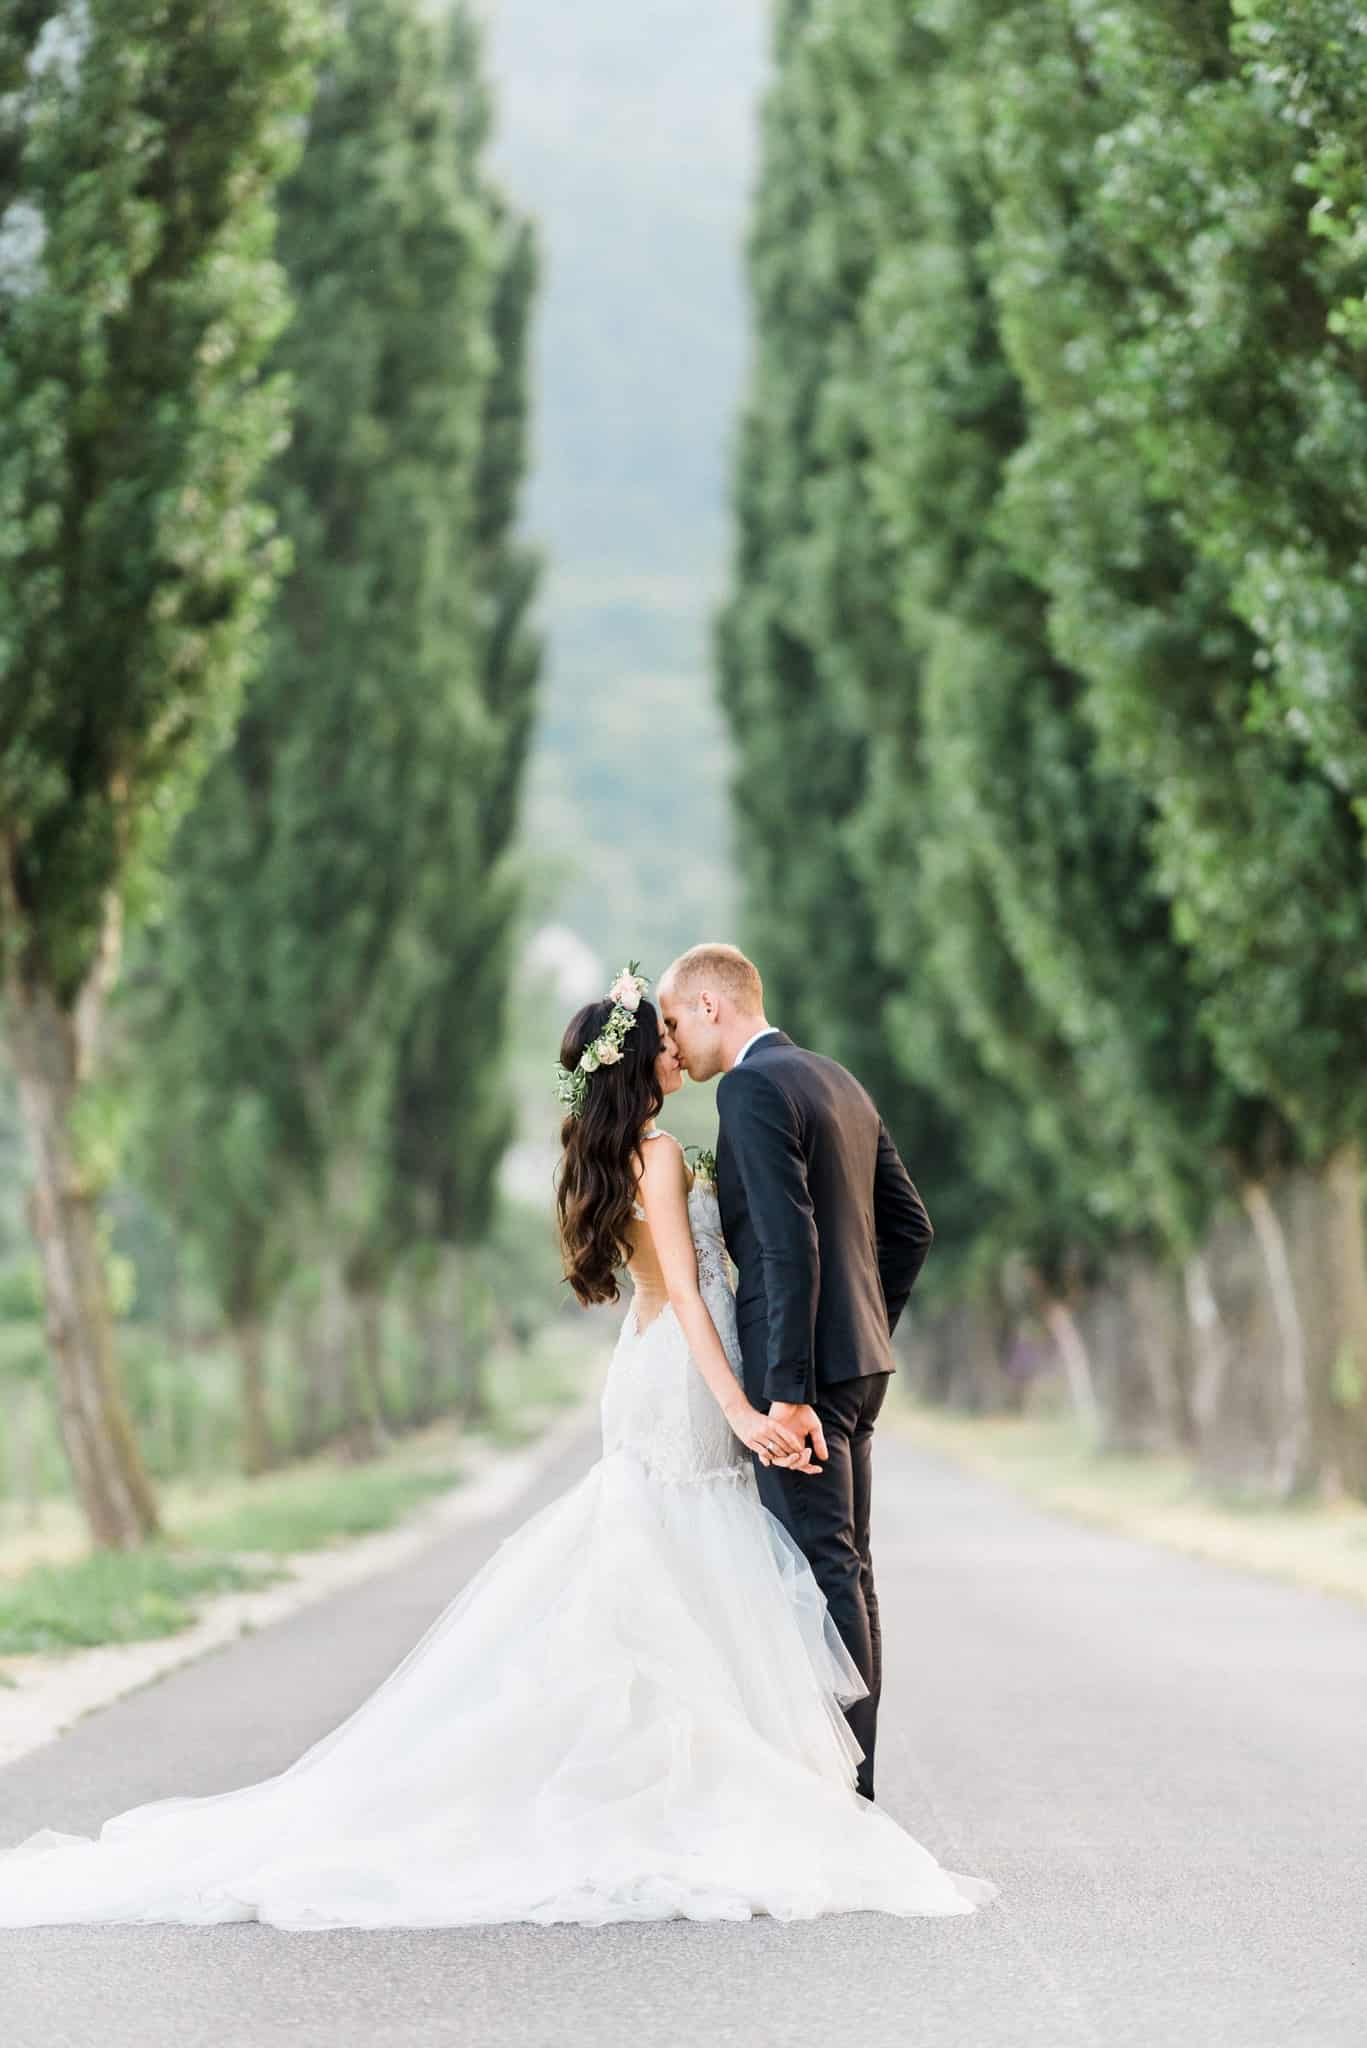 Wedoverhills_Prewedding_Italy_Fineart_Wedding_Photographer_0051